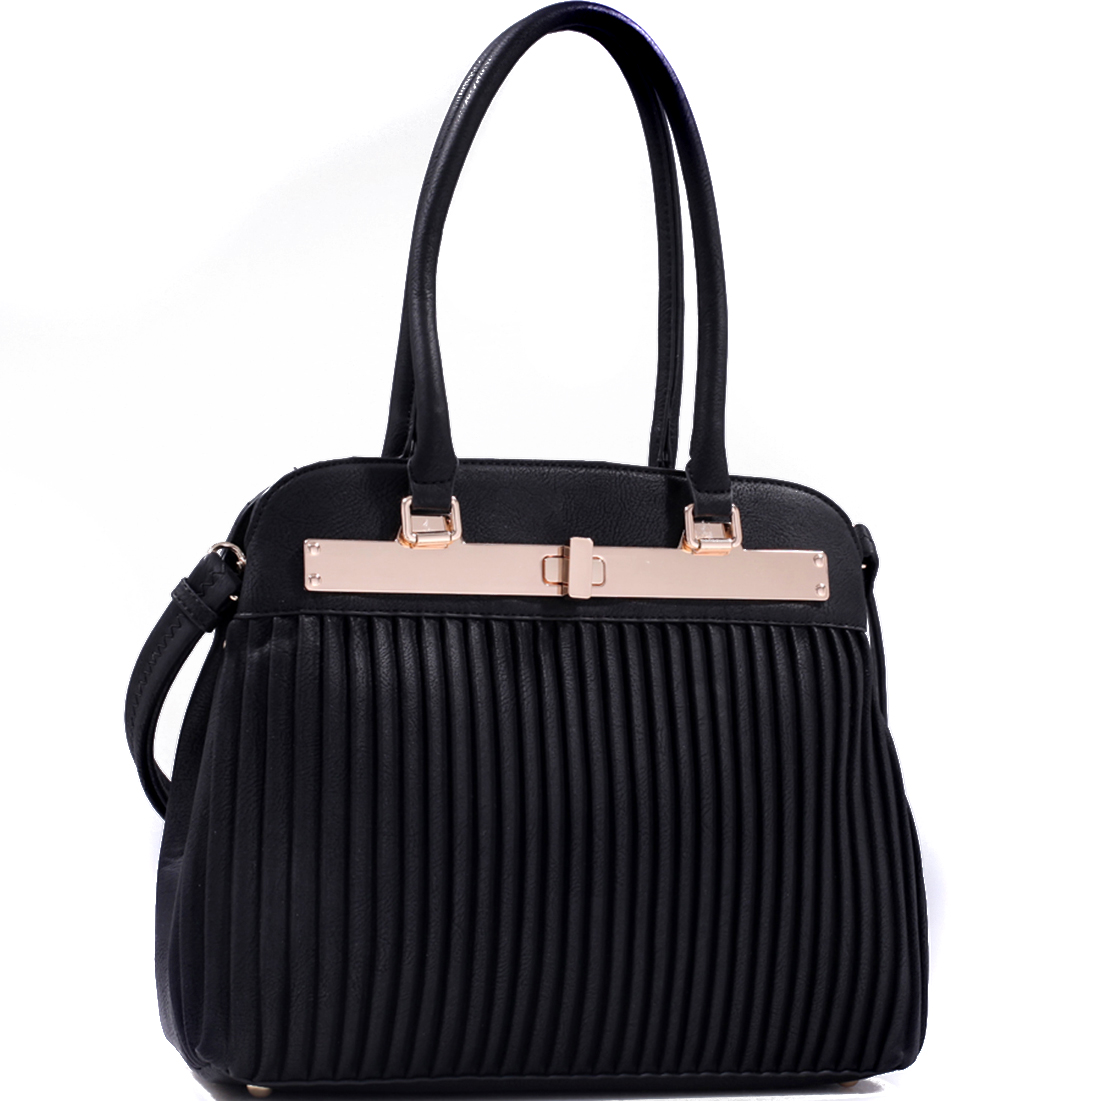 Ridged Vegan Leather Gold-Tone Handbag